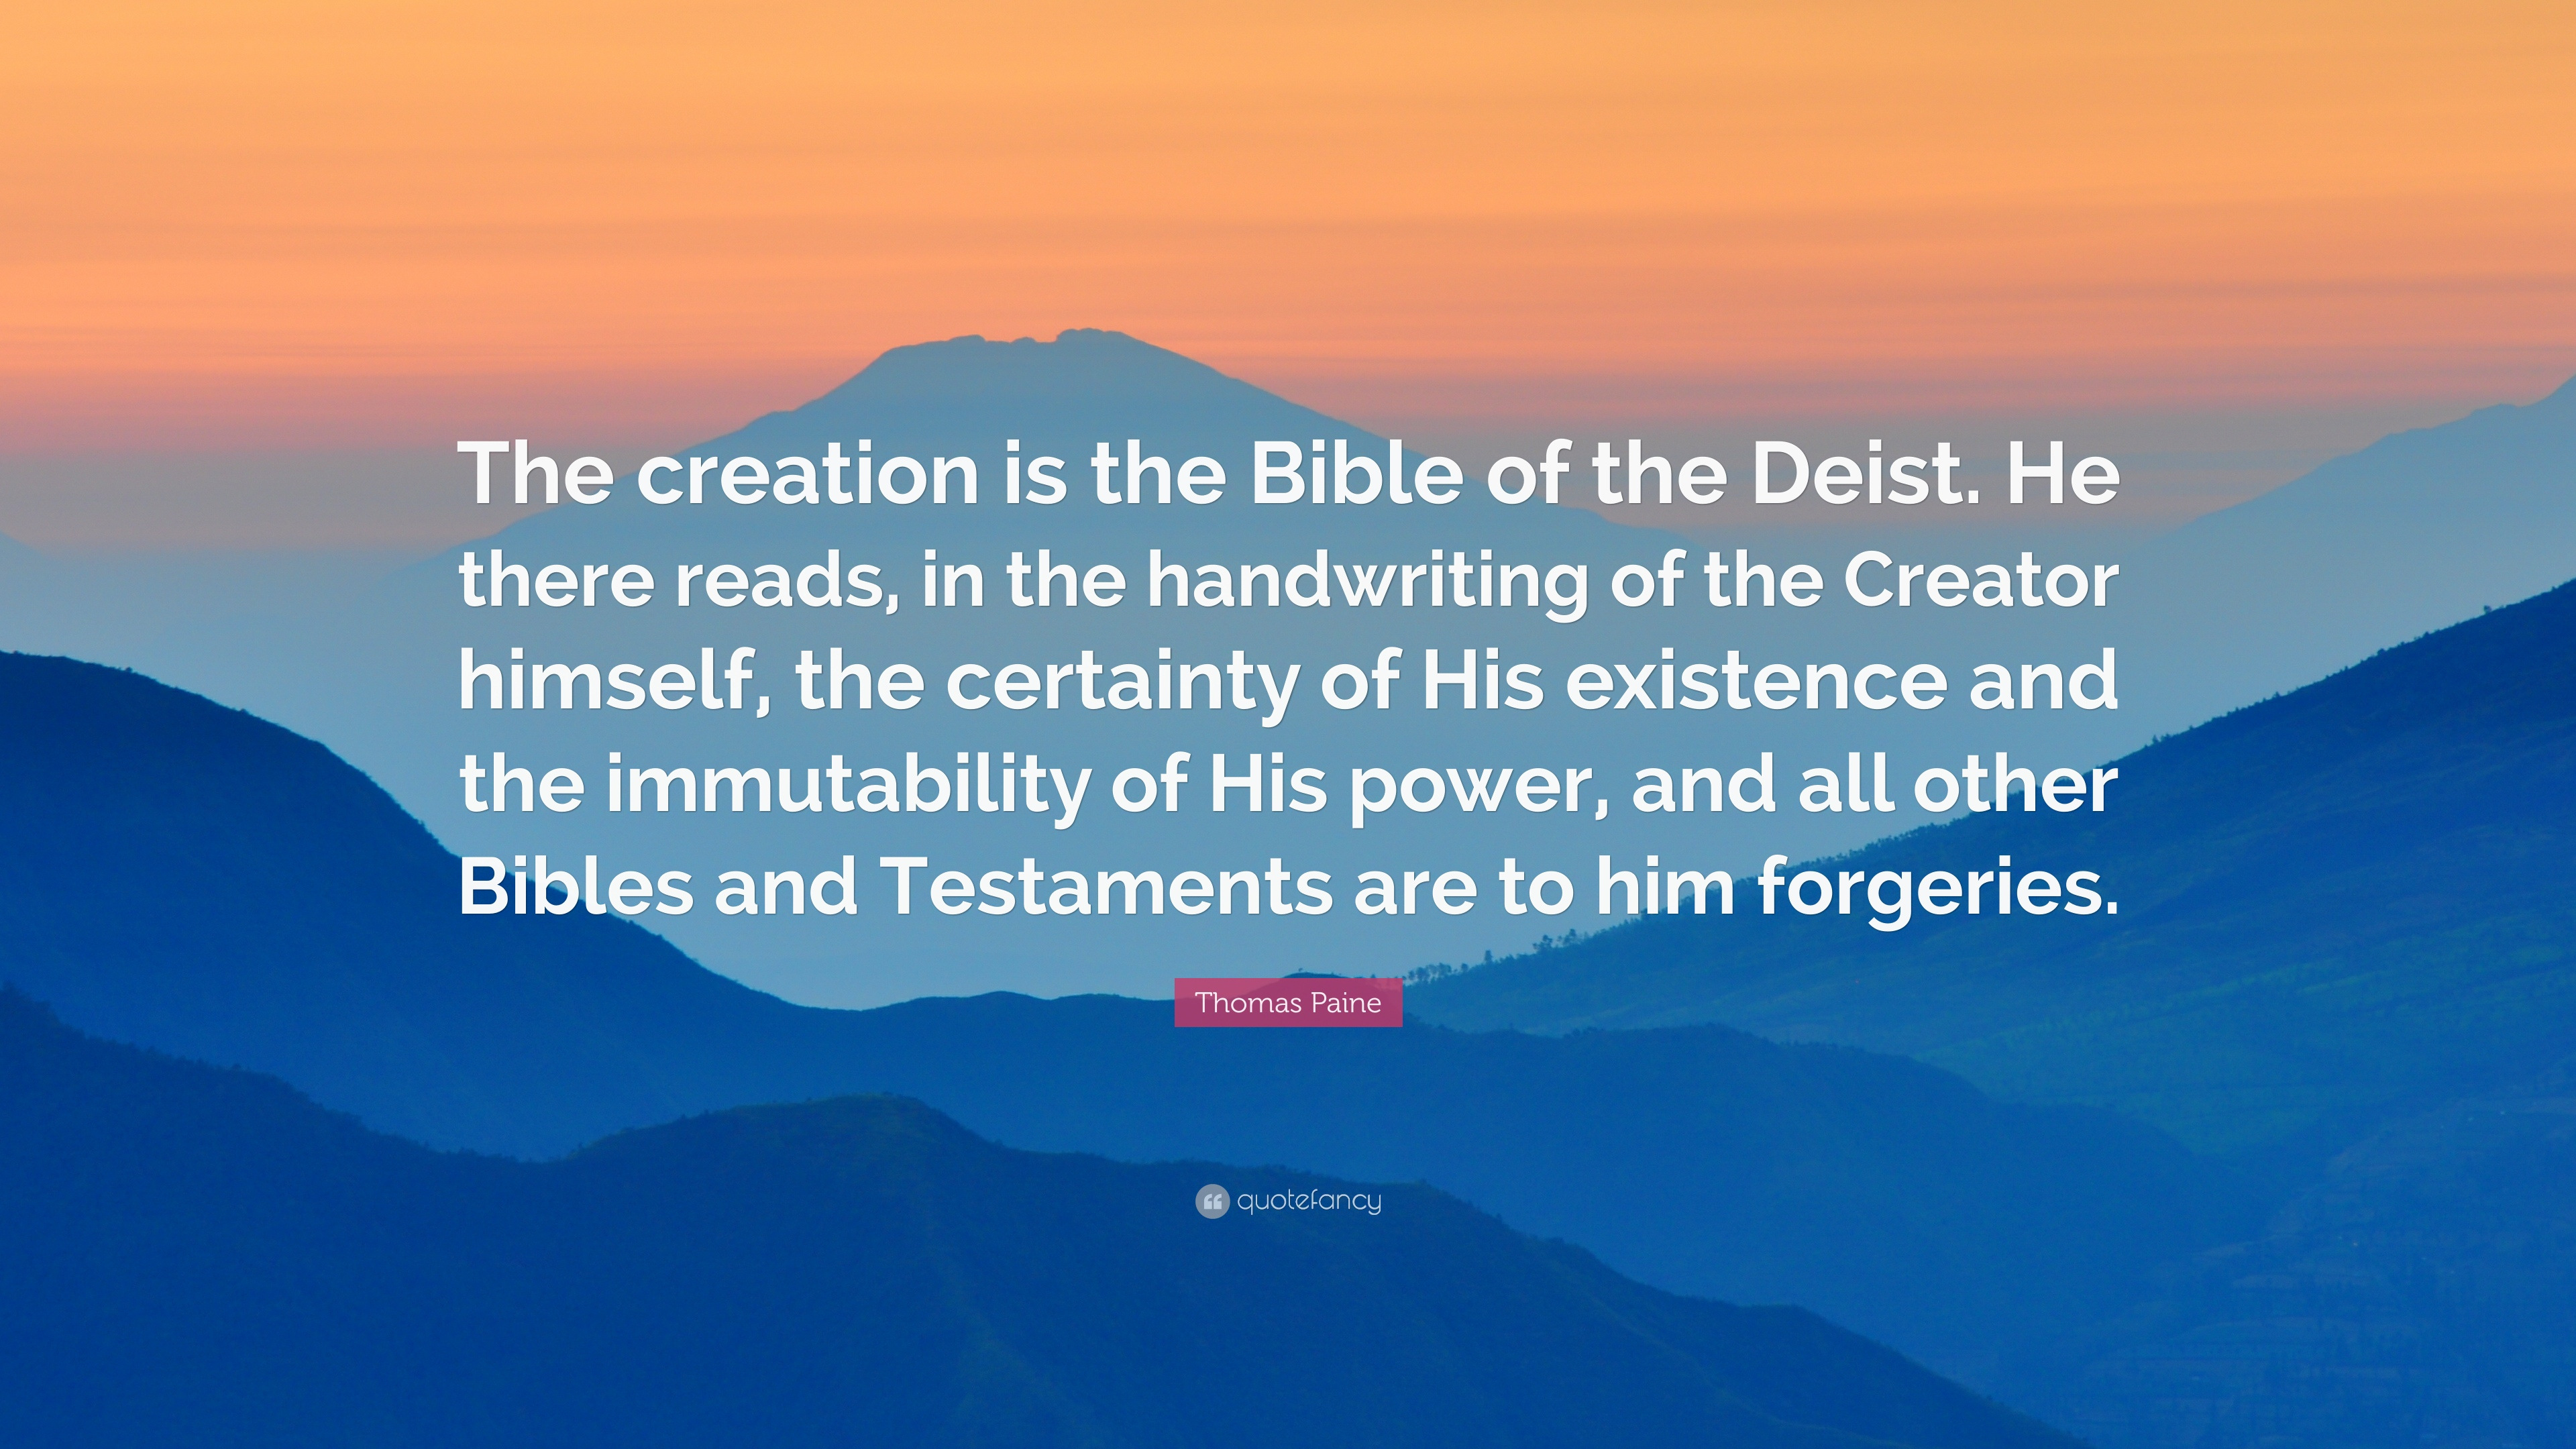 thomas paine quote u201cthe creation is the bible of the deist he